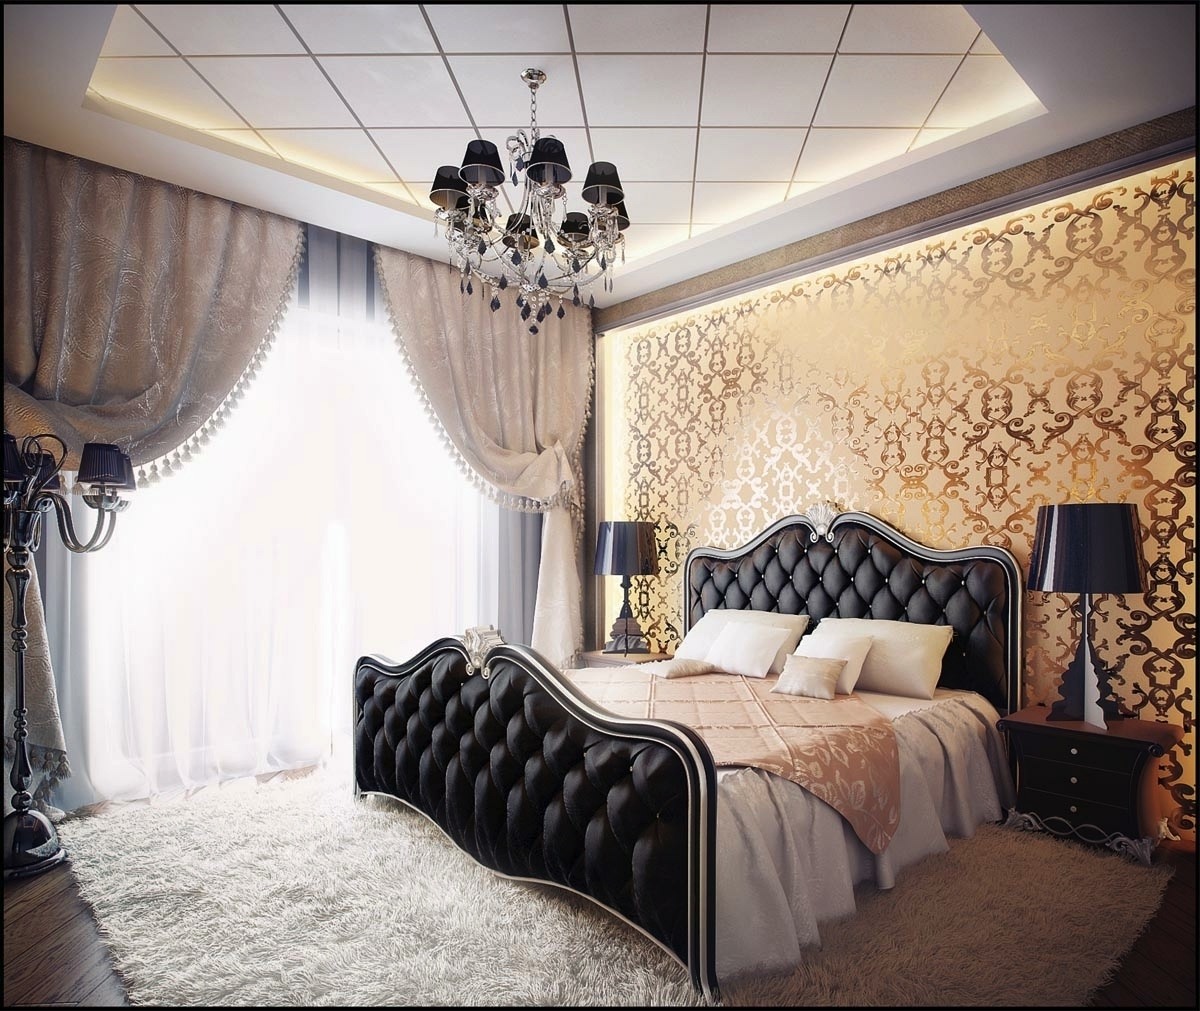 Featured Image of Luxury Gothic Bedroom Design Ideas